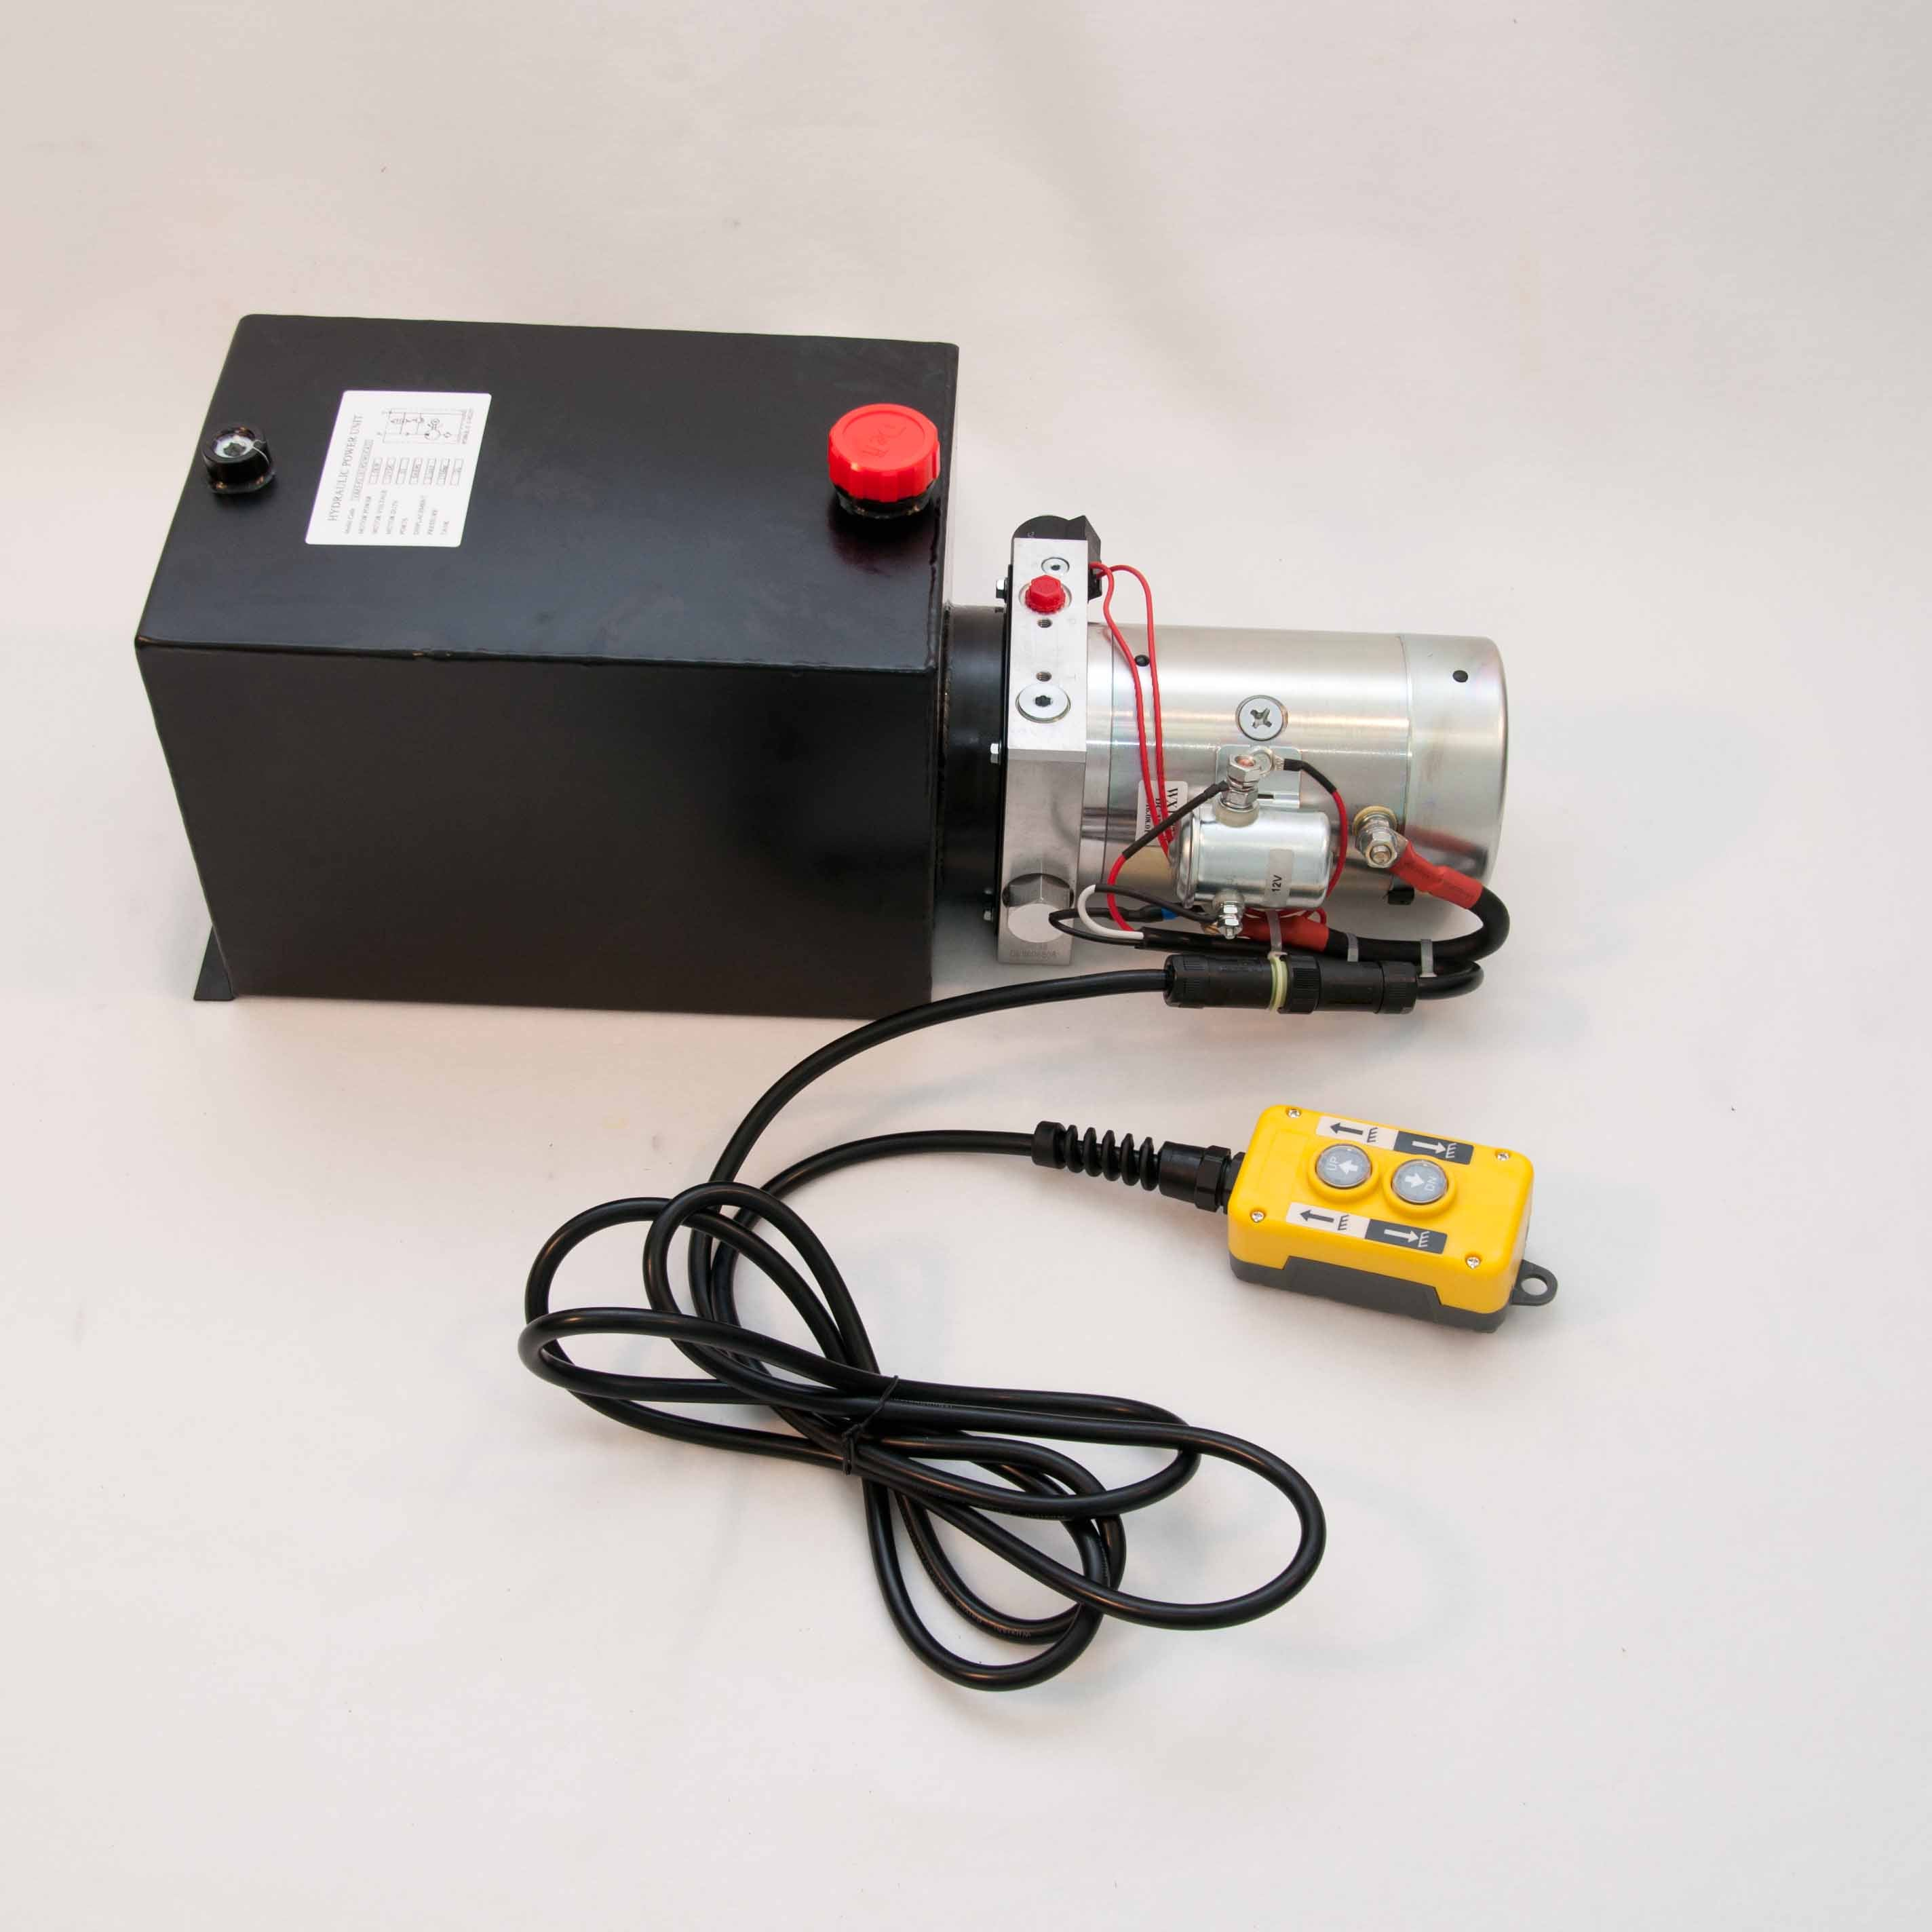 Tool Tuff Single Acting 12 Volt Dc Electro Hydraulic Power Unit W Remote Suitable For Dump Or Tipper Trailer